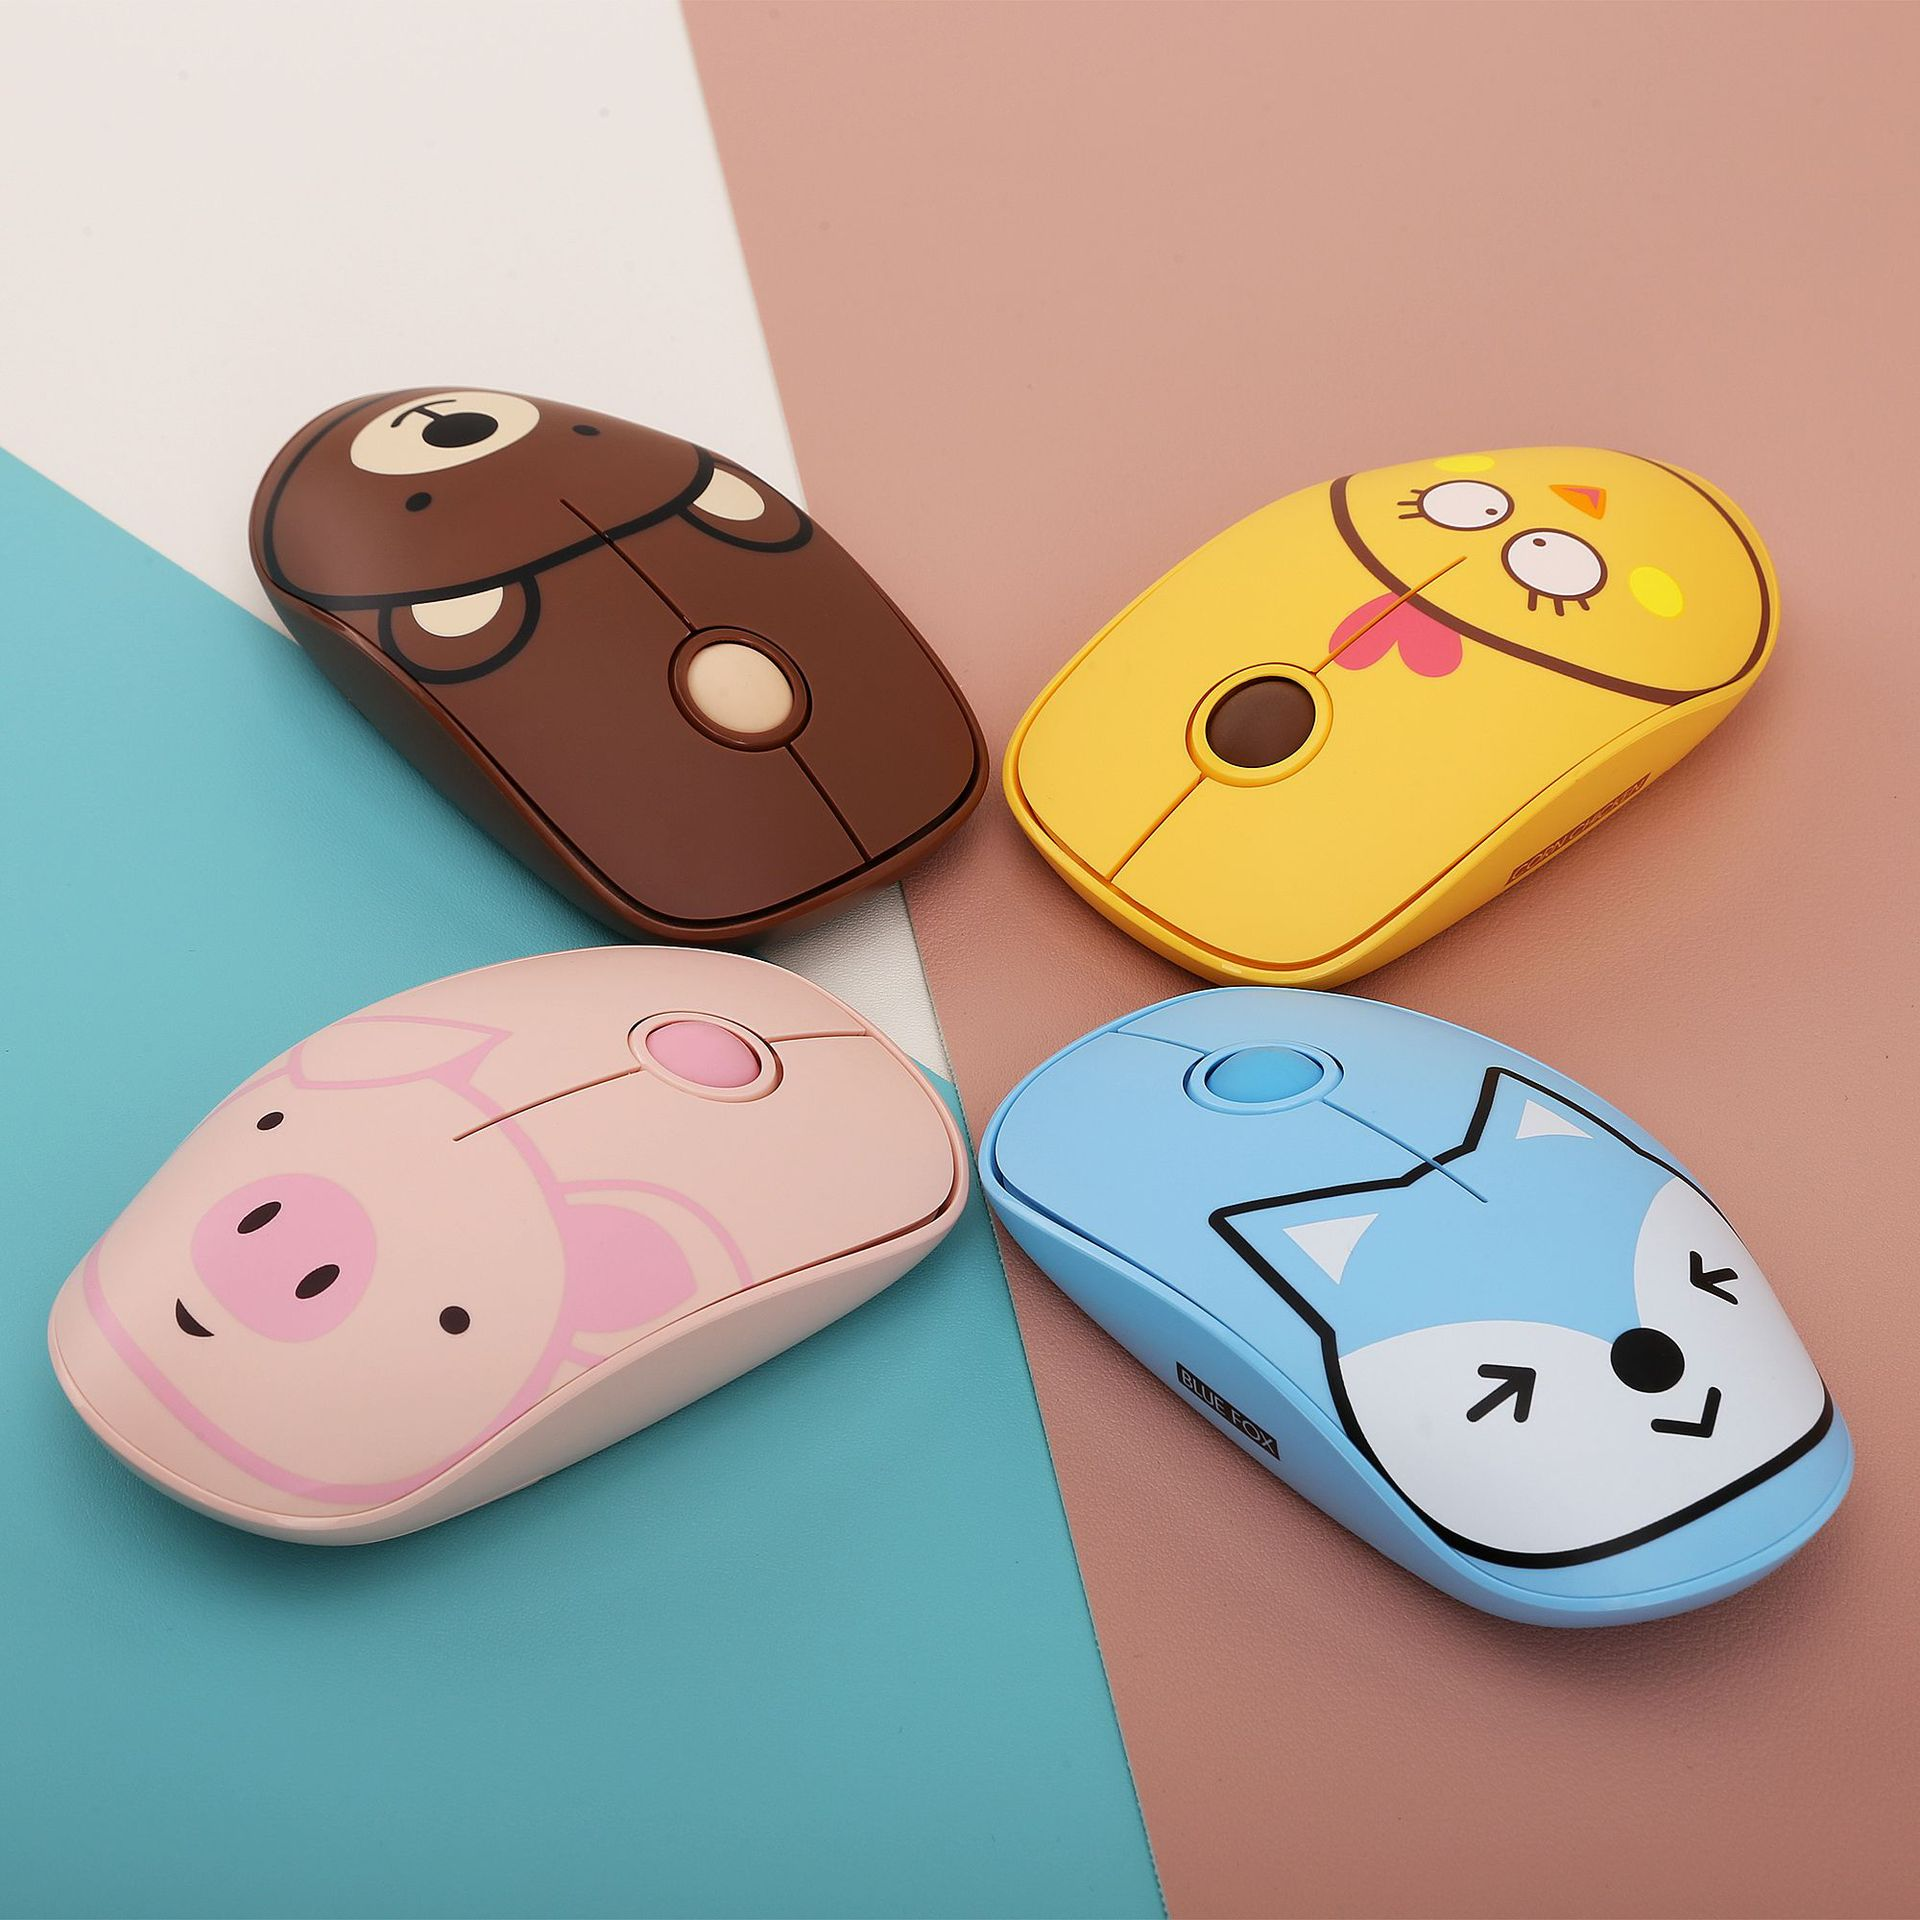 Brand New Wireless Mouse Computer Accessories Creative Novelty Pink Girl Optical Mouse Portable Mini Mute 2.4Ghz Gaming Mouse